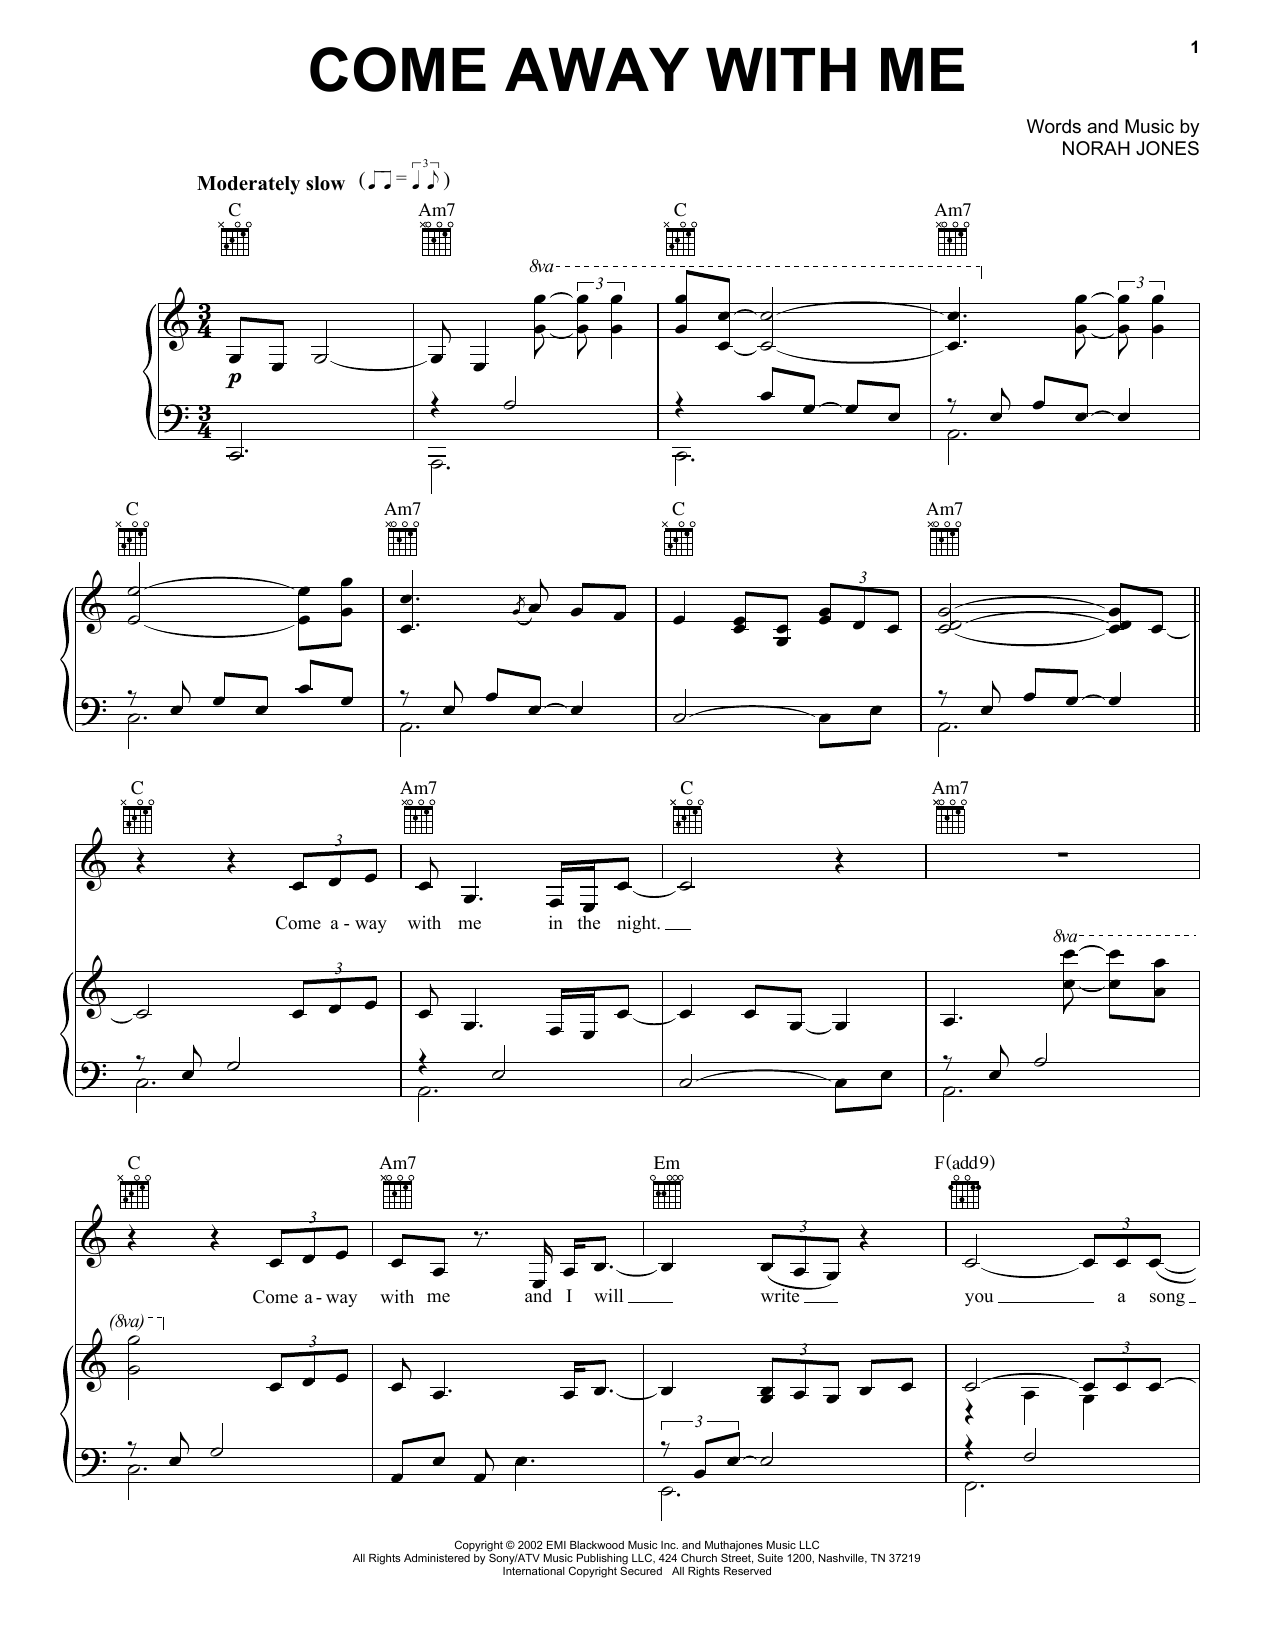 Download Norah Jones 'Come Away With Me' Digital Sheet Music Notes & Chords and start playing in minutes